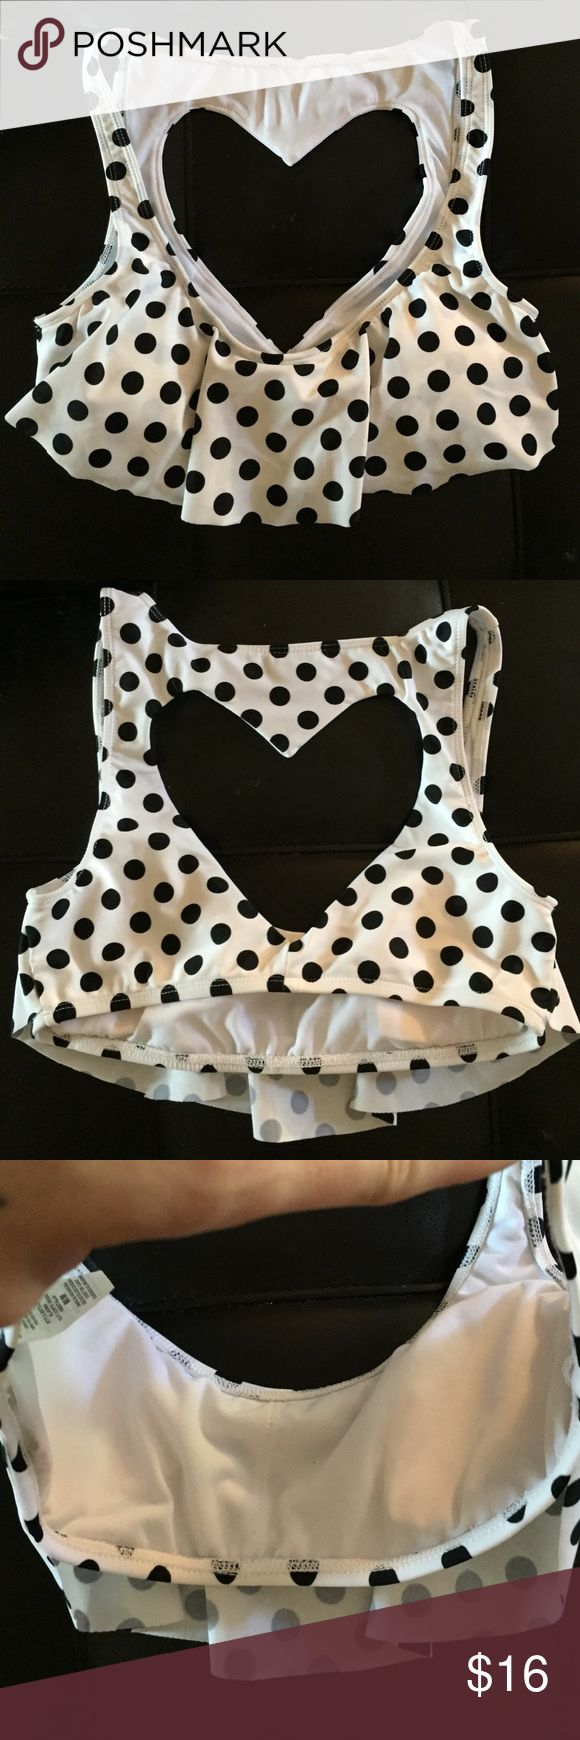 Heart polka dot kini top sz M bikini Lab black and white polka dot bikini top size medium lined and padded lightly top rufly along the front and has a gorgeous Heart Cut OUT along the top of your back if your going to have tan lines having a Tan HEART on the top of your back would be the CUTEST TAN LINES EVER! Can match with white black or any colorful bottoms because it's black and white! Didn't fit my DD so brand new never worn great quality materials made from Bikini Lab! Offers welcome…